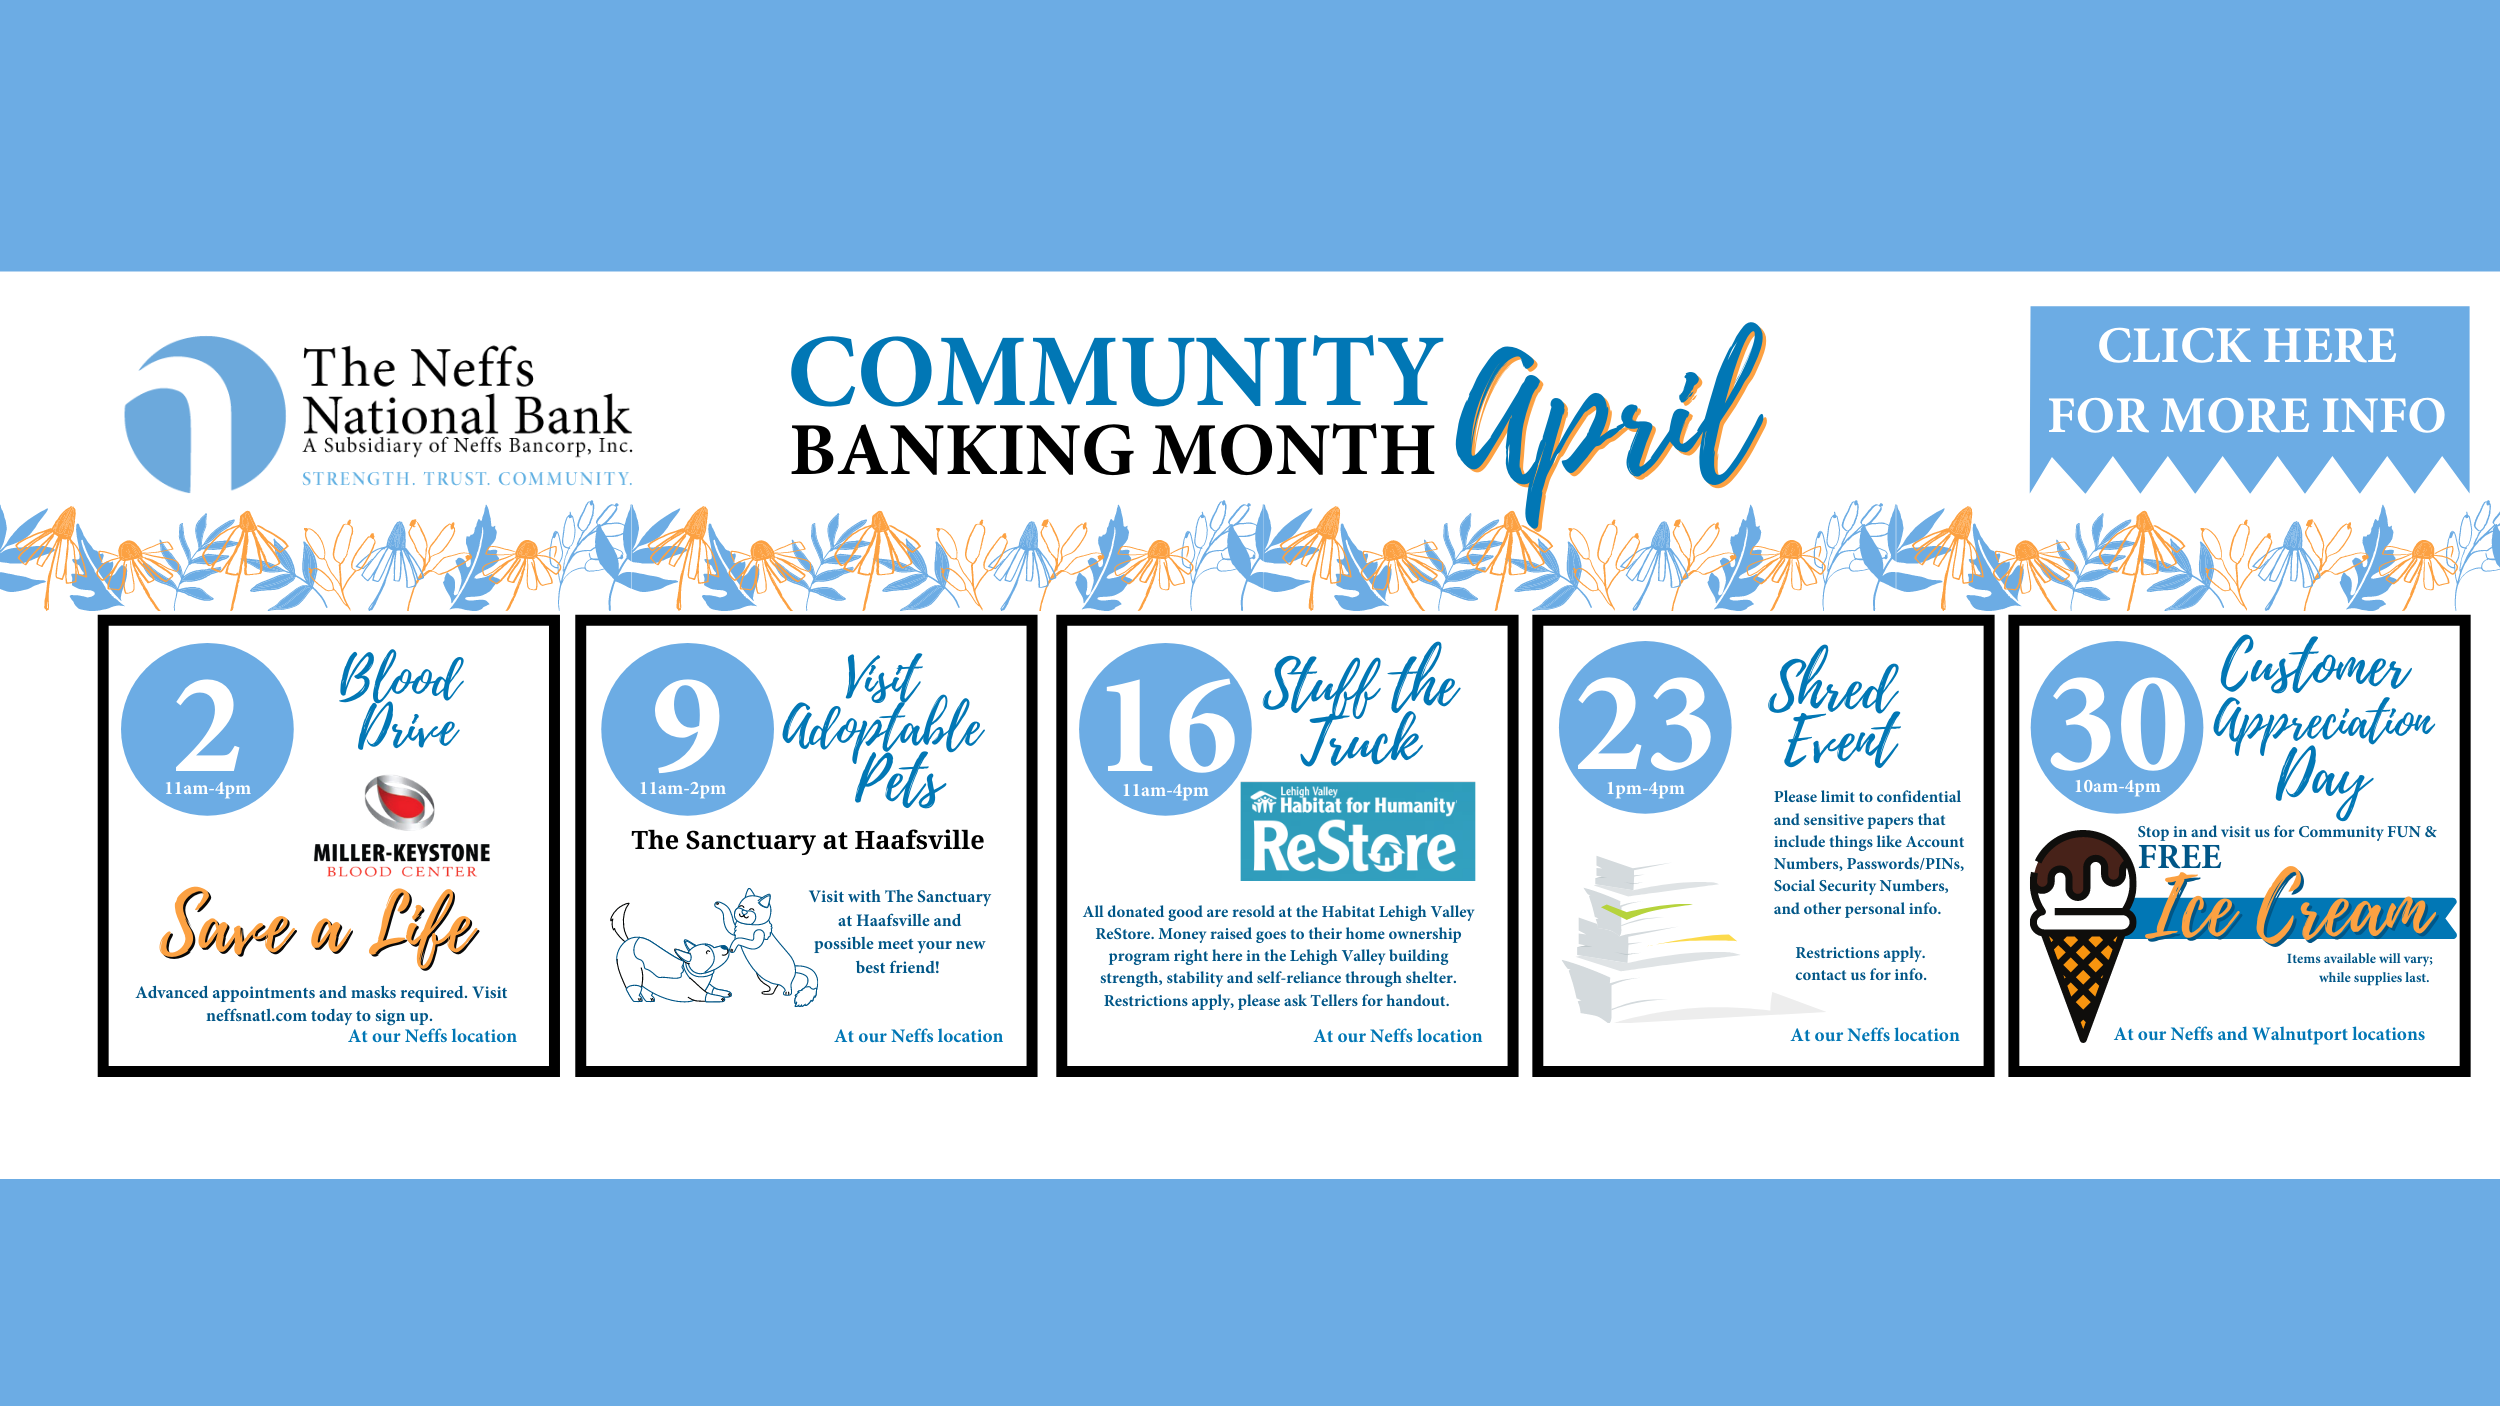 Community Banking Month!